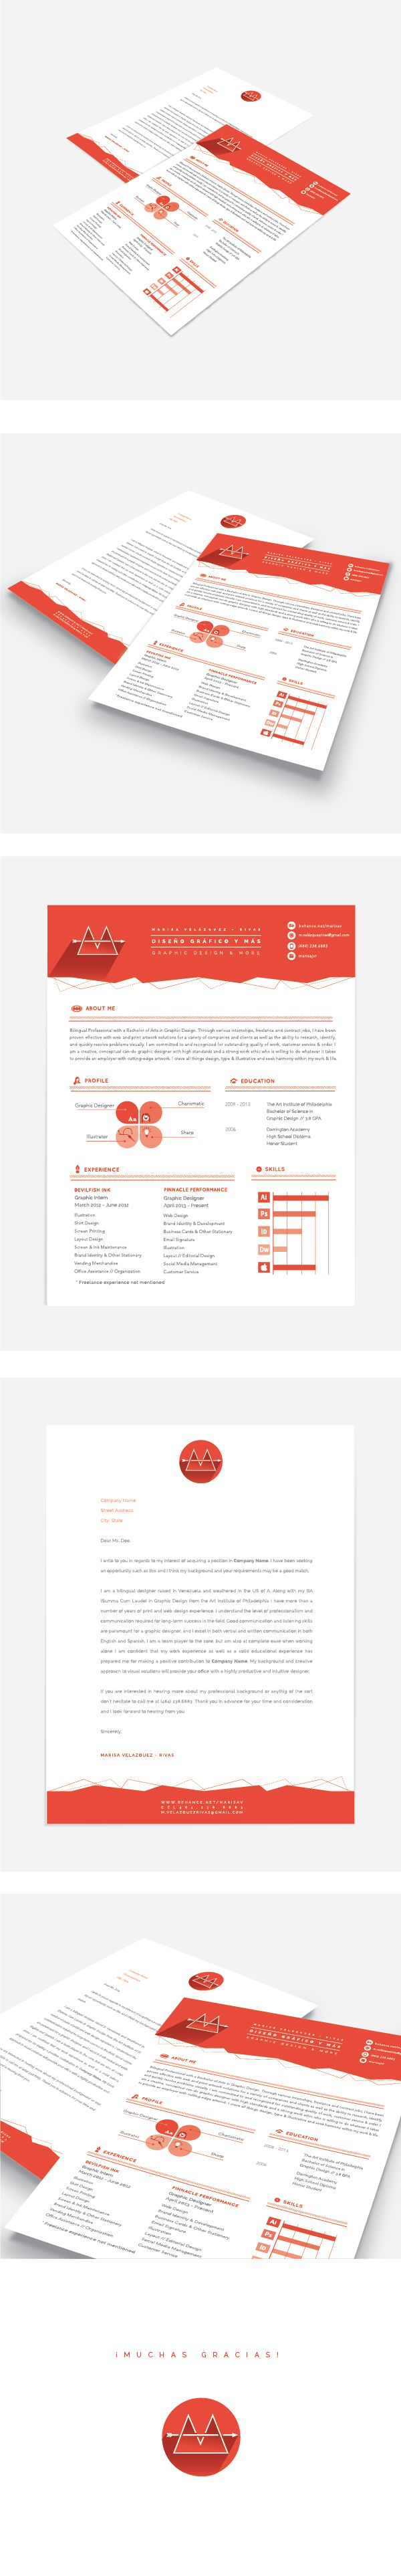 best ideas about resume styles cv design love the dynamic header and creative branding image the extreme image shadow resume design